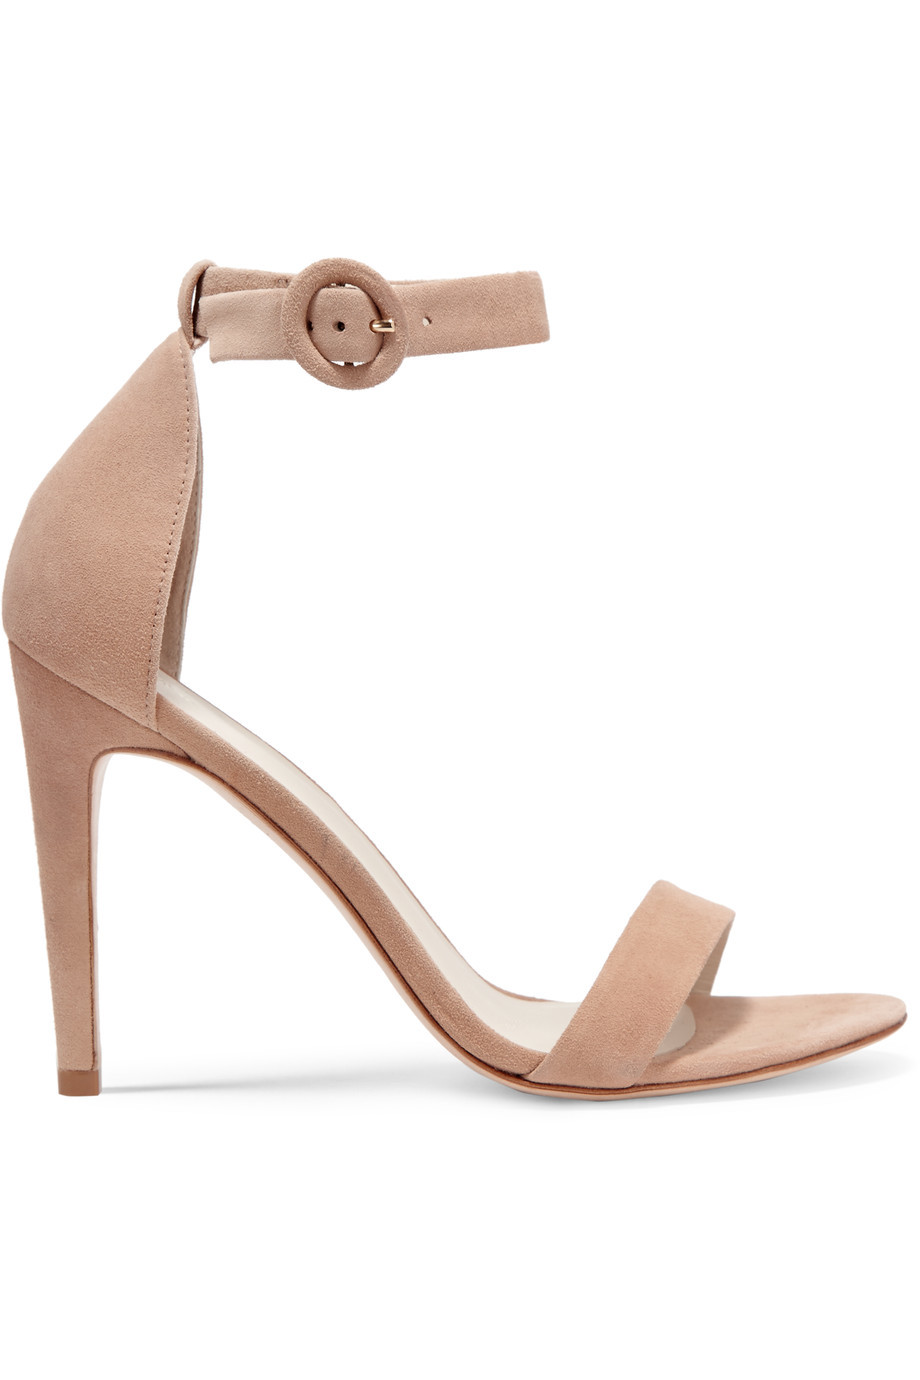 Rivington Suede Sandals Blush - predominant colour: camel; occasions: evening, occasion; material: suede; ankle detail: ankle strap; heel: stiletto; toe: open toe/peeptoe; style: standard; finish: plain; pattern: plain; heel height: very high; season: s/s 2016; wardrobe: event